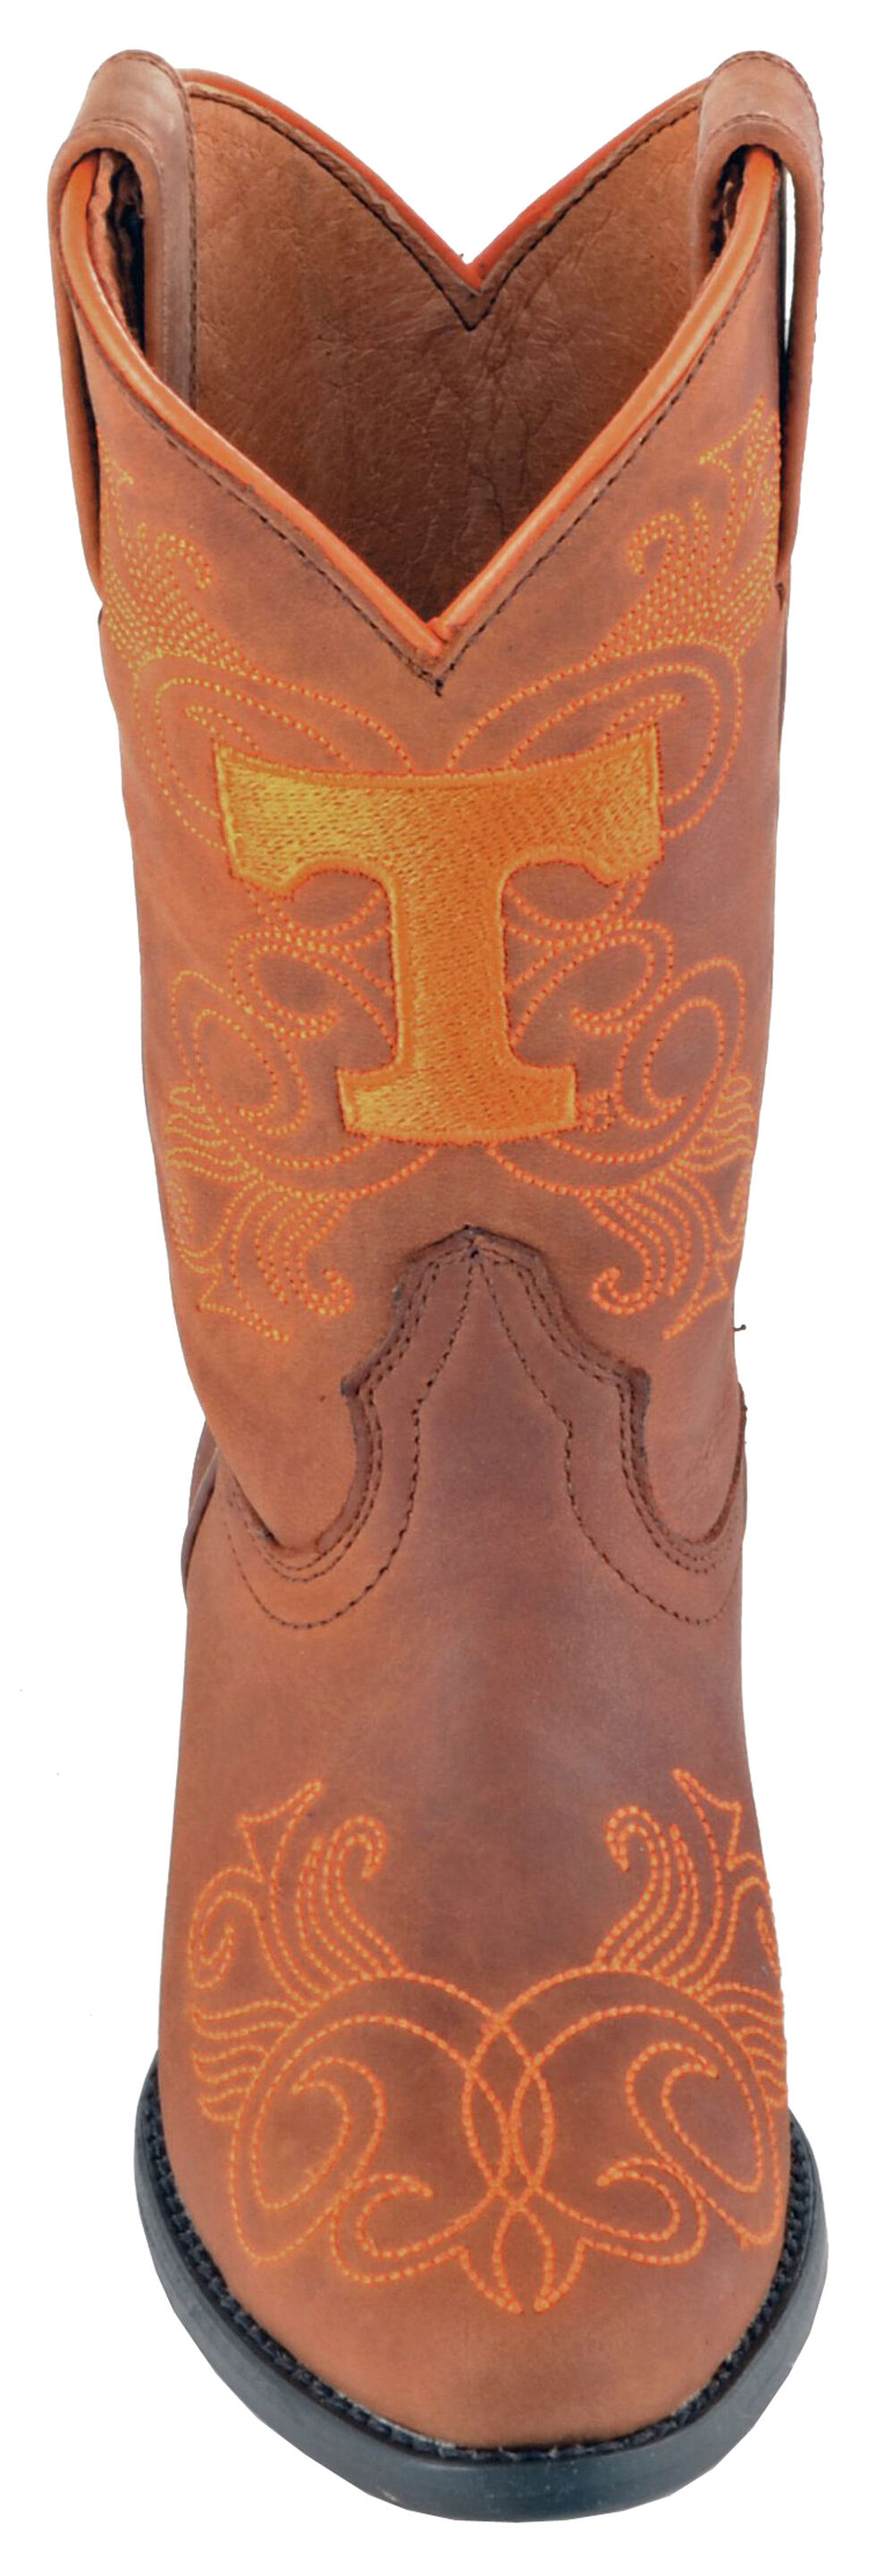 Gameday Boots Girls' University of Tennessee Western Boots - Medium Toe, Honey, hi-res